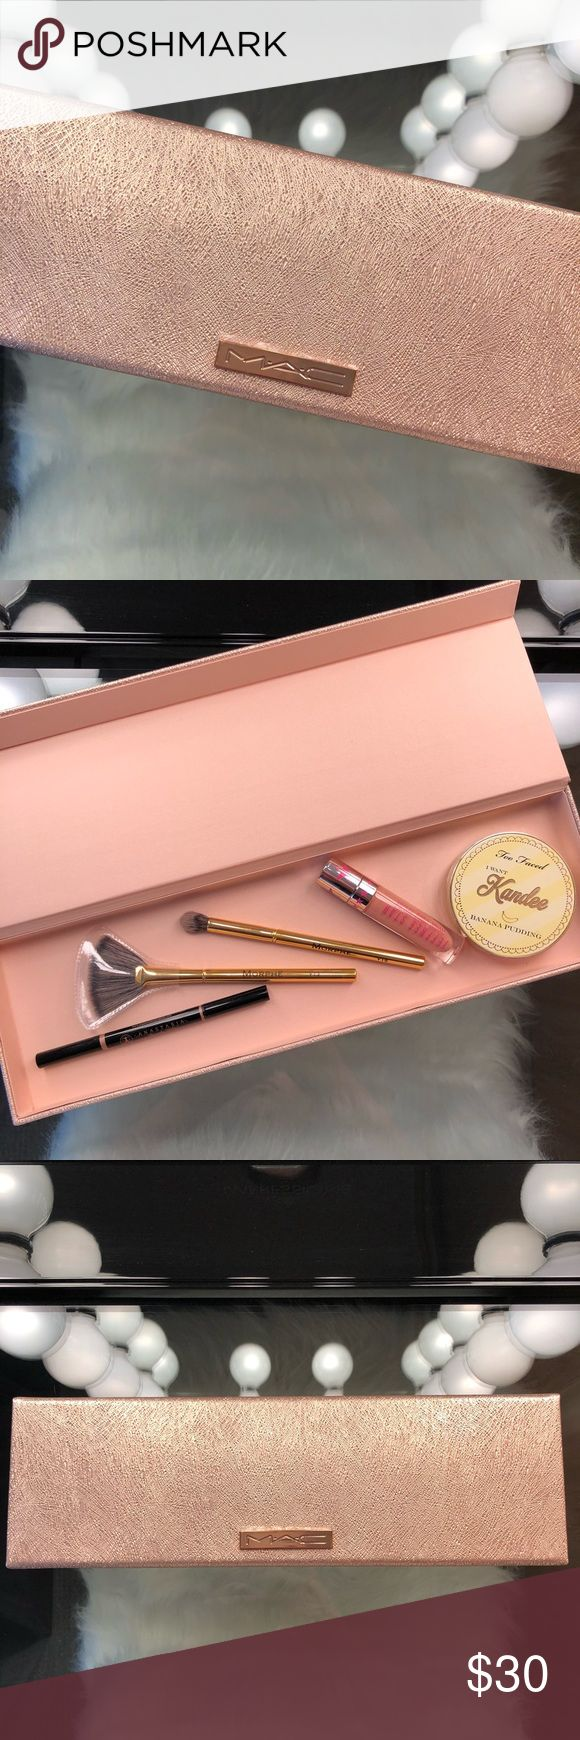 """MAC Makeup Box MAC Rose Gold Makeup Box """"Limited Edition"""" Can be used for whatever. L14in x W4.5in  Condition; NWT MAC Cosmetics Makeup Brushes & Tools"""